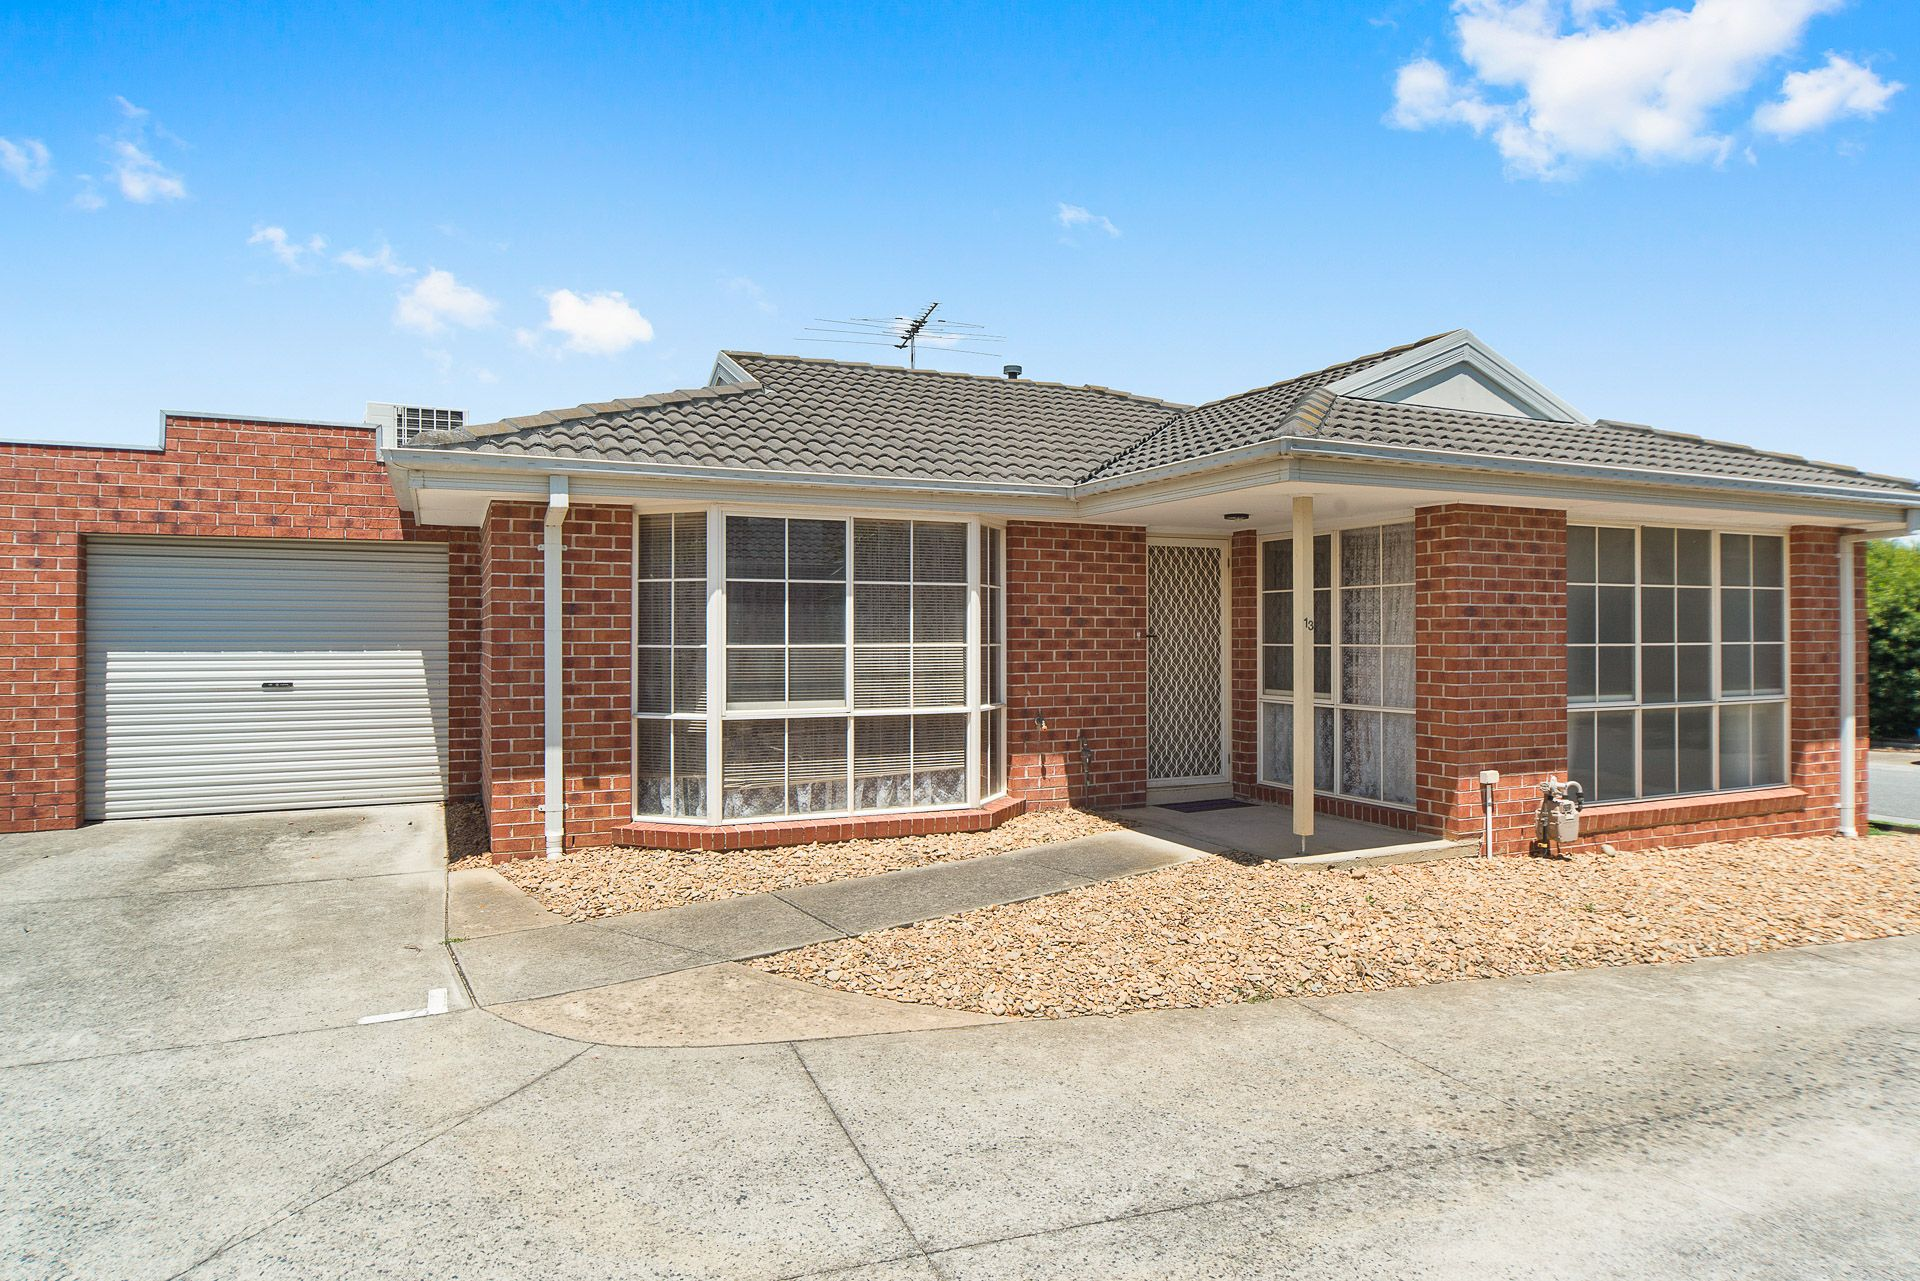 13/49 Oberon Drive, CARRUM DOWNS, VIC, 3201 - Image